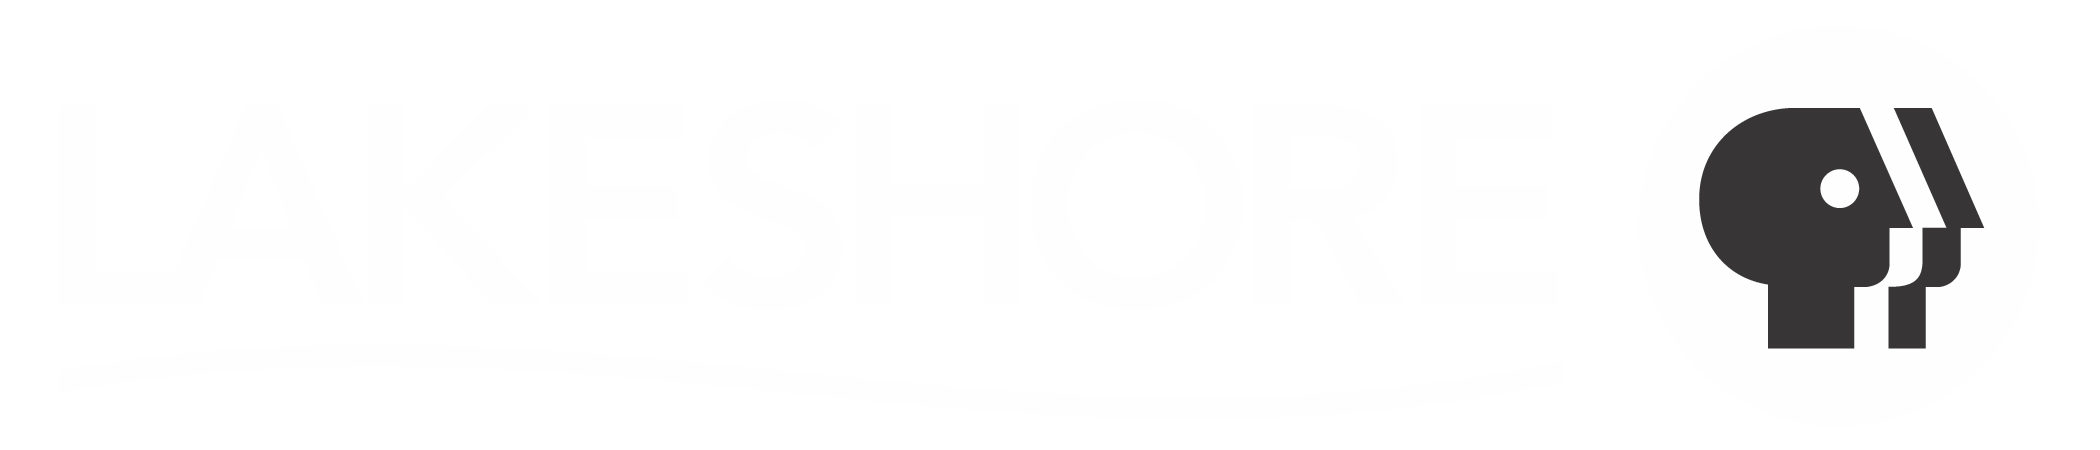 Lakeshore PBS Logo